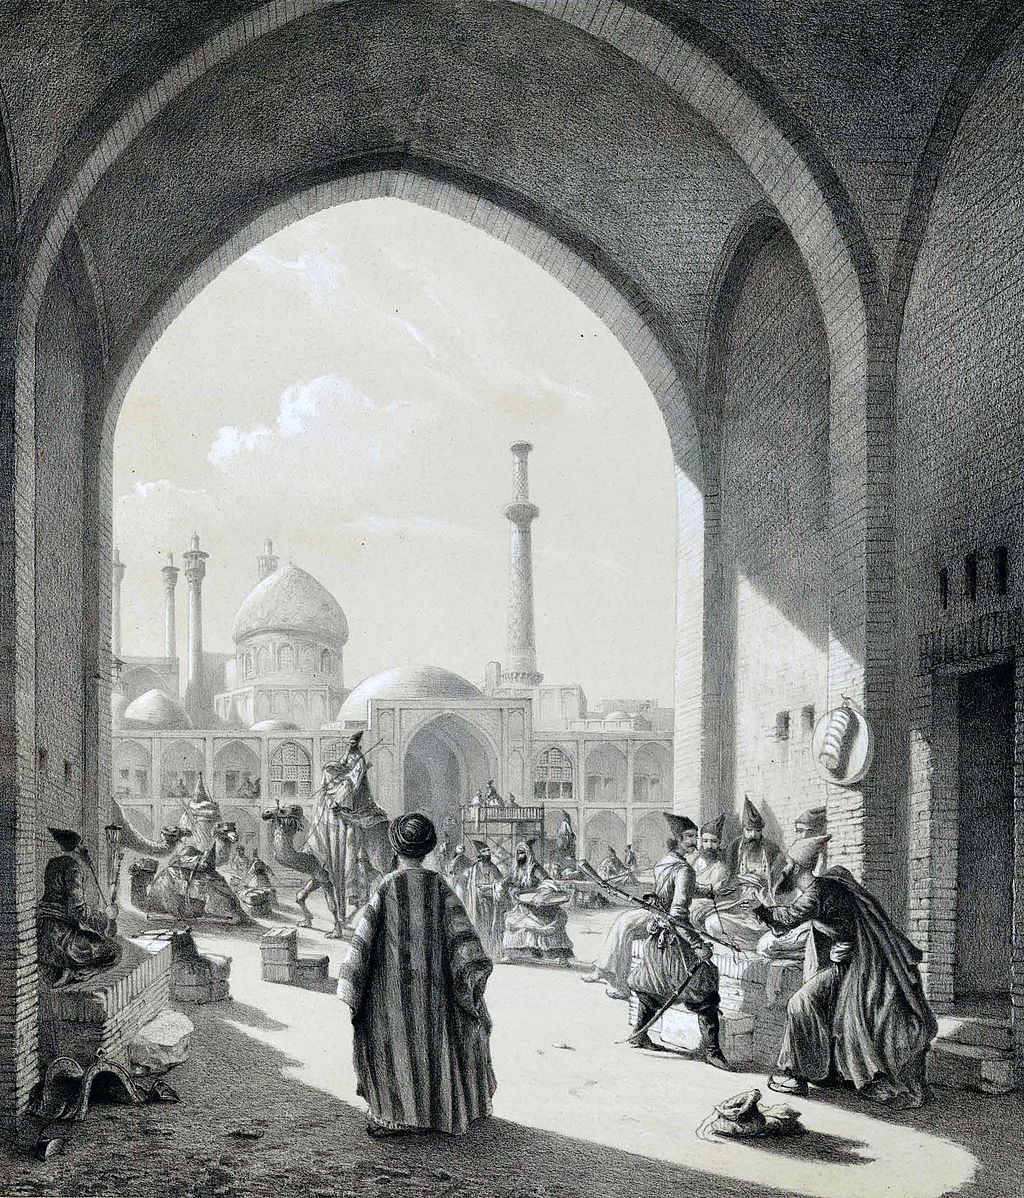 """Entrance of a Caravanserai in Isfahan"" (1840), by Eugène Flandin. Public domain via Wikimedia Commons."